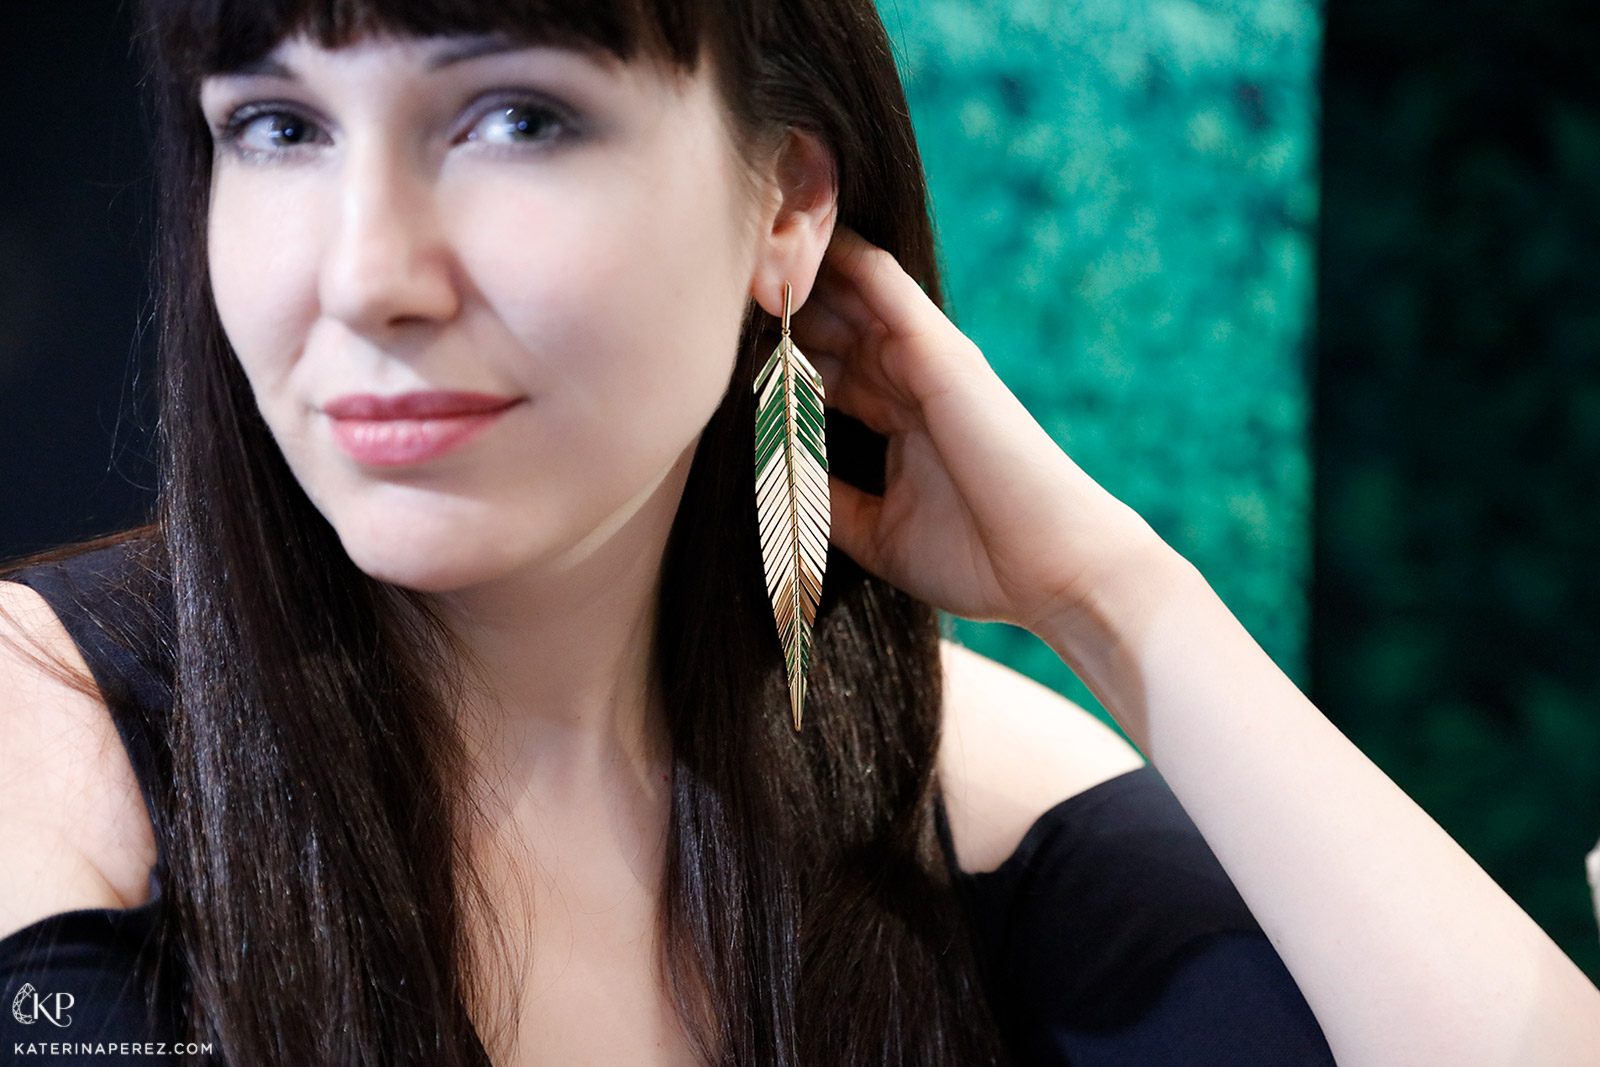 CADAR 'Feathers' earrings in yellow gold from the 'Second Skin' collection